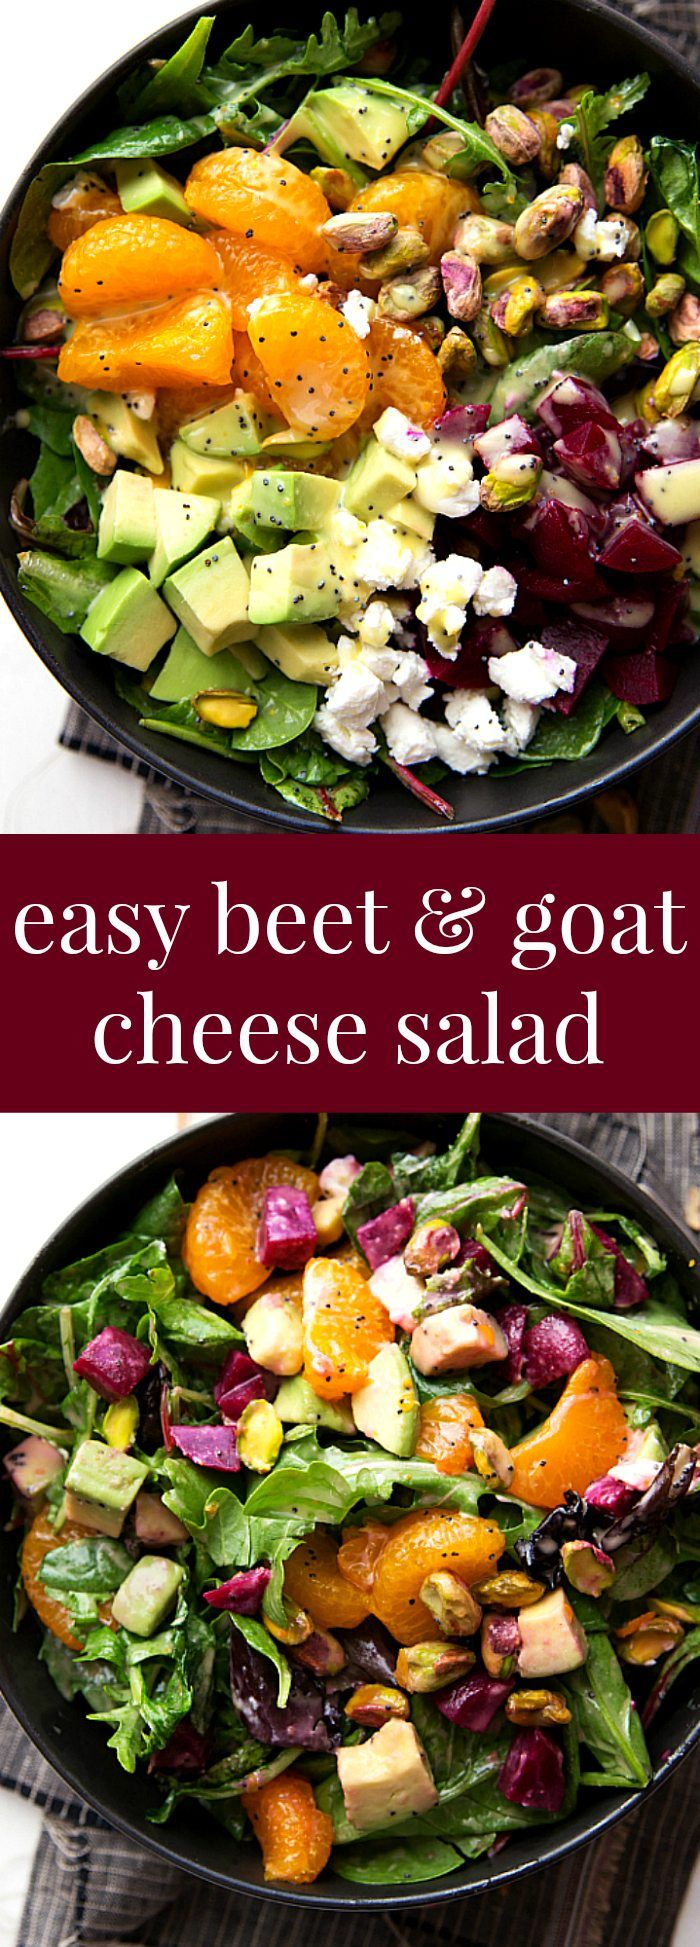 Super Quick Beet And Goat Cheese Salad With A Delicious Orange Honey Poppyseed Dressing Perfec Beet Goat Cheese Salad Beet And Goat Cheese Goat Cheese Salad